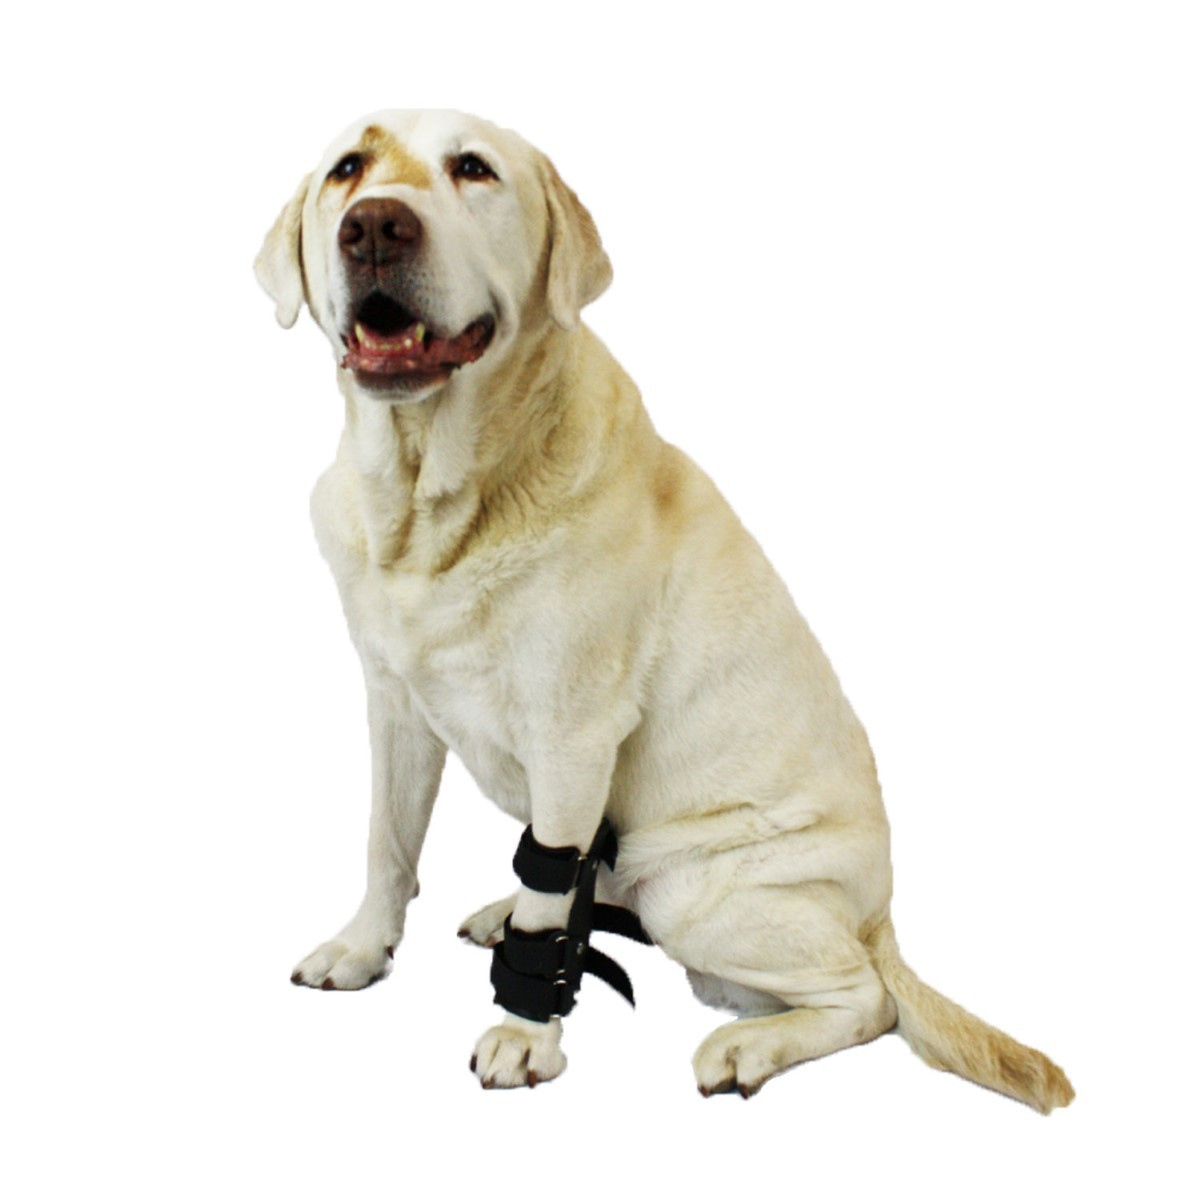 Primary image for Pet Splint for Dogs | Dog Carpal Foot Splint For Dogs with Arthritis and Injurie